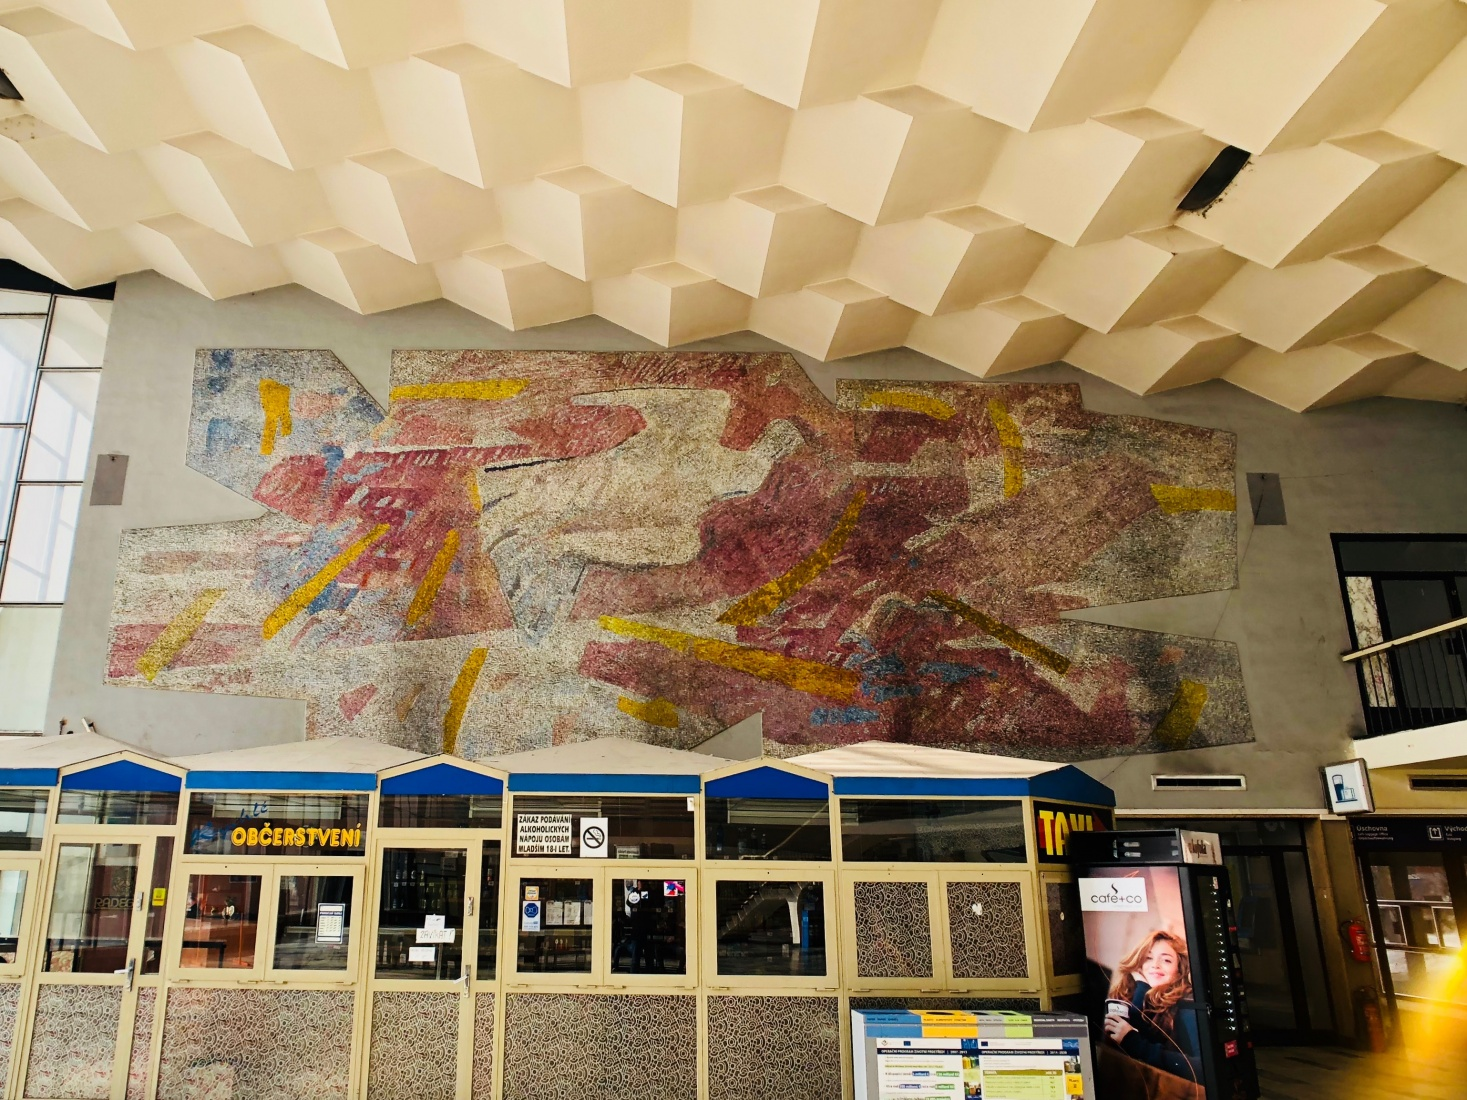 One wall in the train station, dominated by a colorful glass mosaic designed by Czech artist Vladimir Kopecký, in the Czech-Silesian mining city of Havířov, Czech Republic.